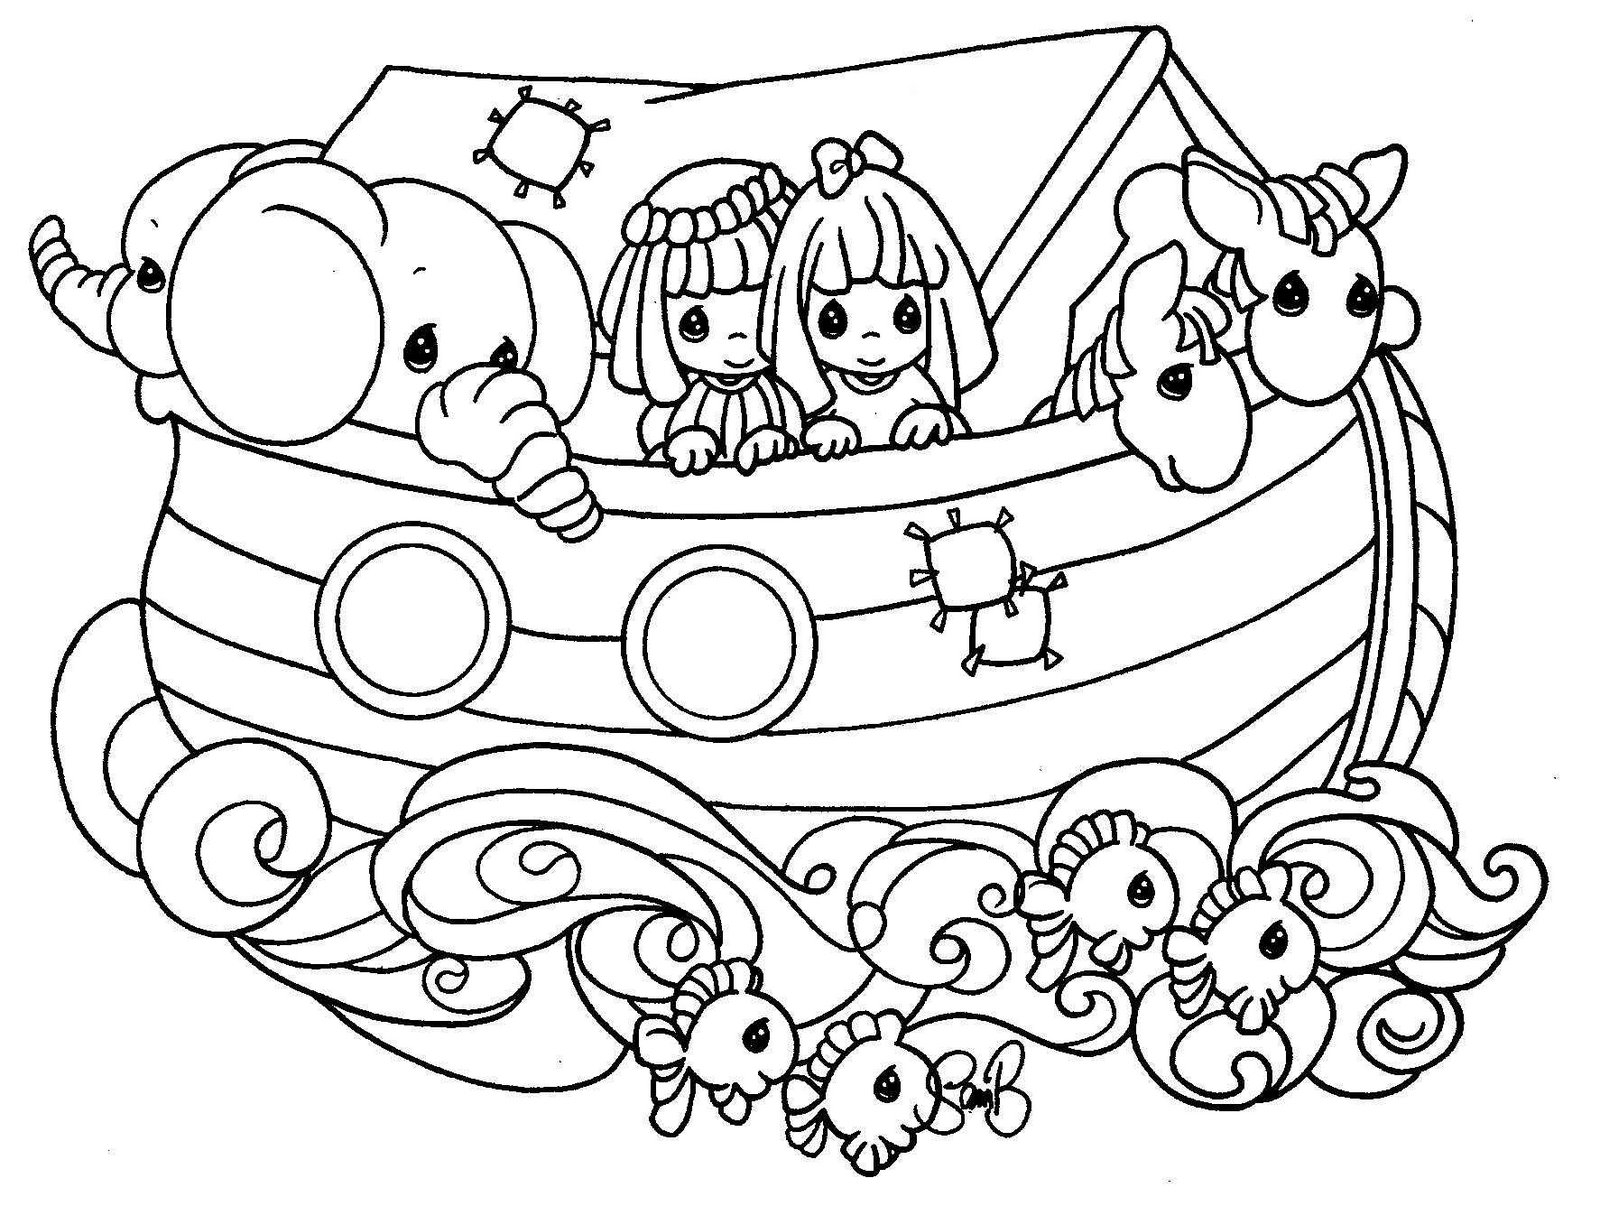 1600x1206 Best Of Noah's Ark Printable Coloring Pages Design Free Coloring